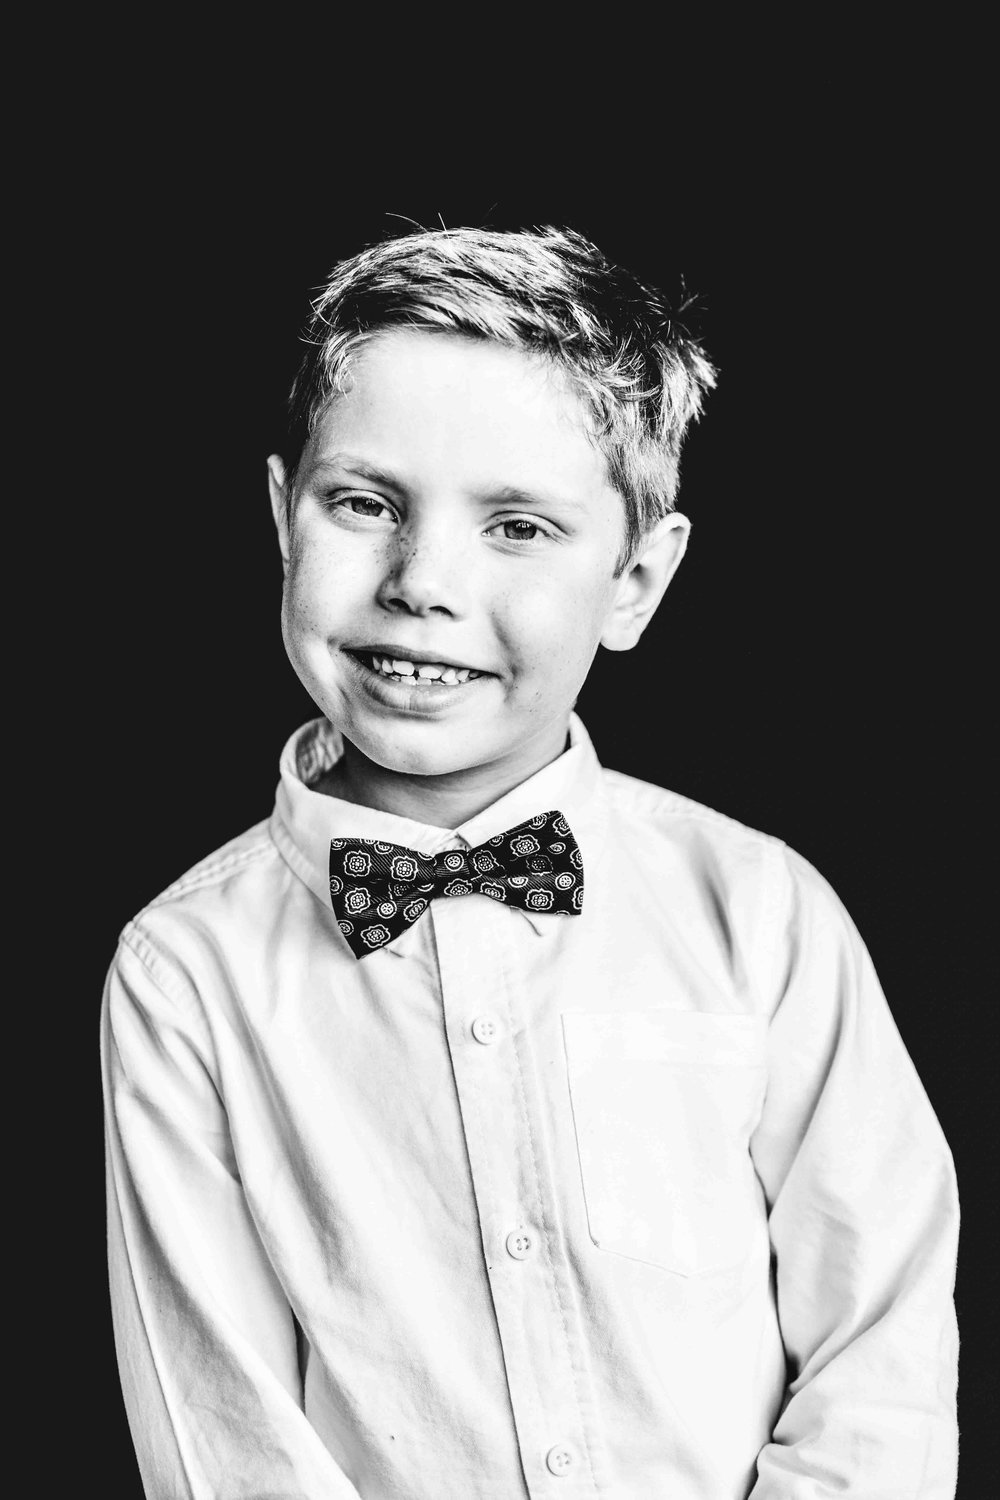 10Jacob Litz2nd gradeBWsnowflake-pittsburgh-boutique-school-photography.jpg